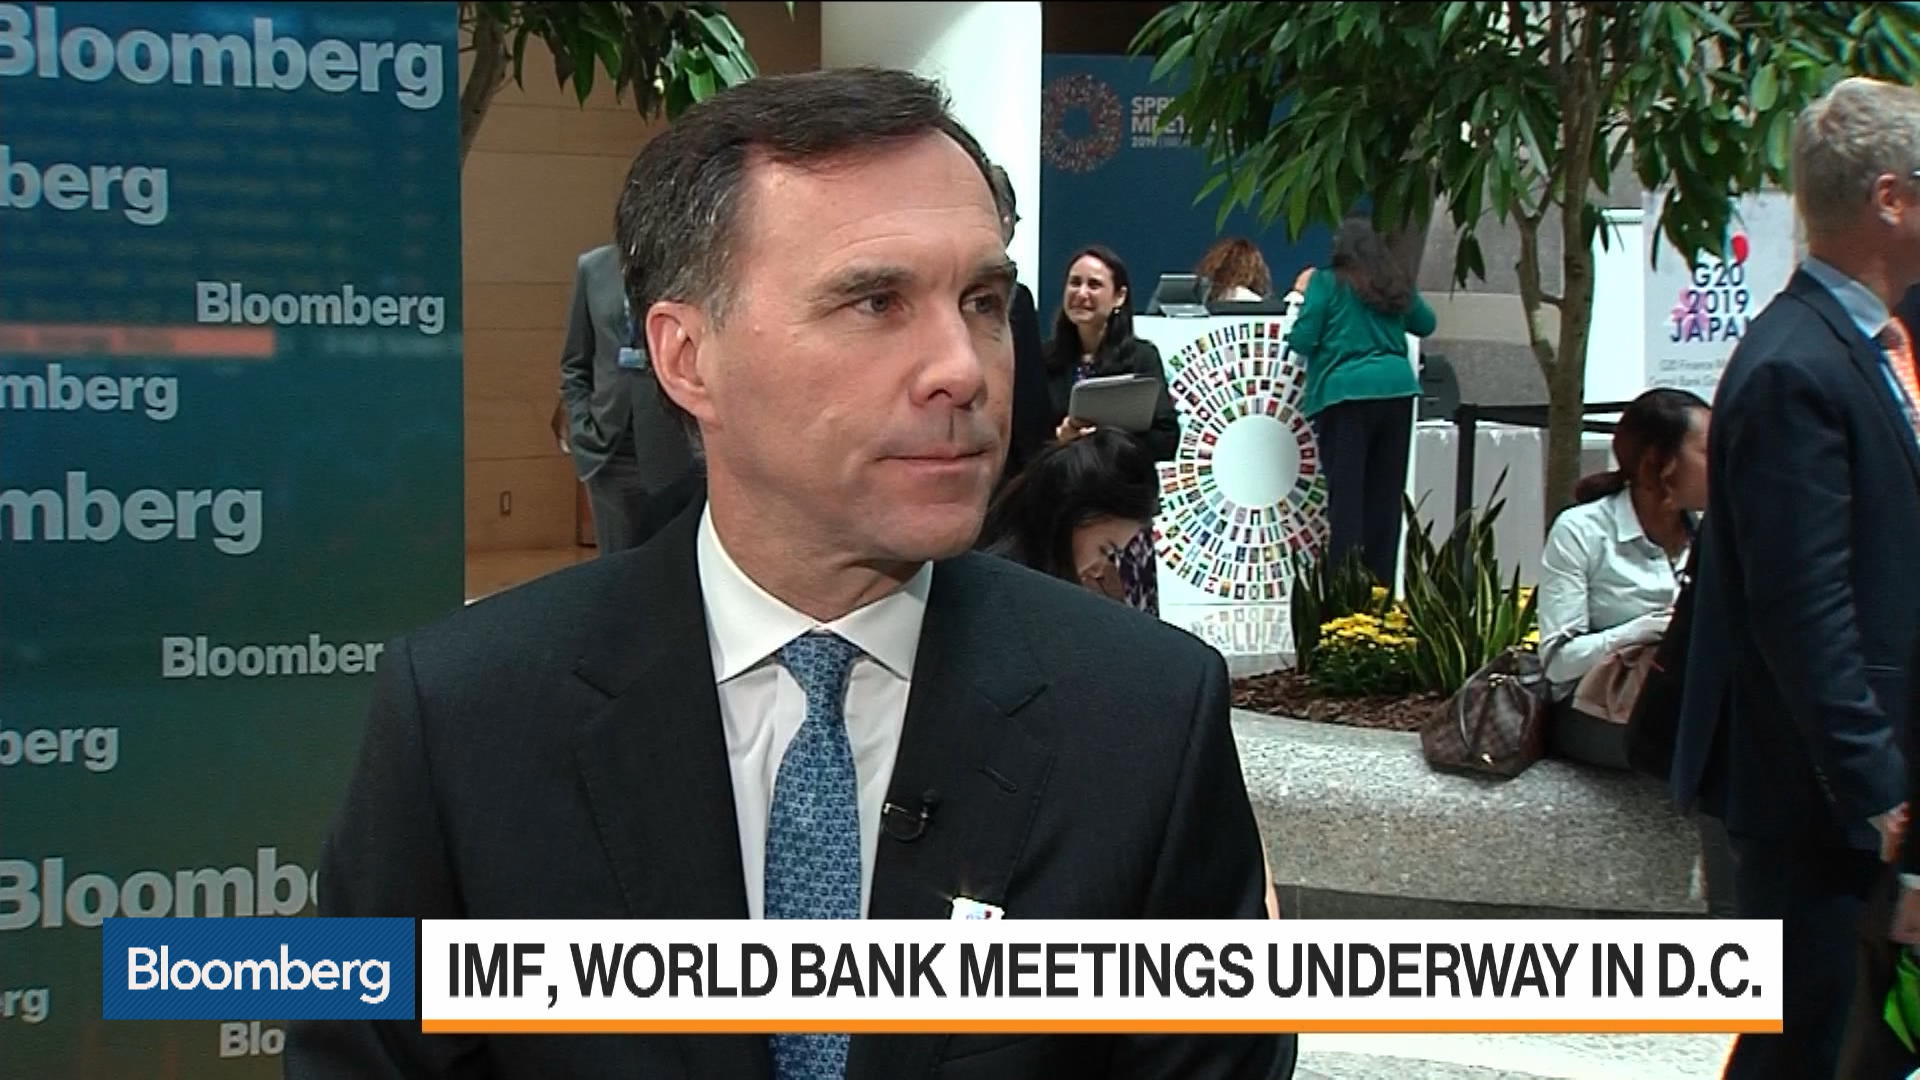 Bank of Canada Has Been Prudent With Rate Hikes, Morneau Says